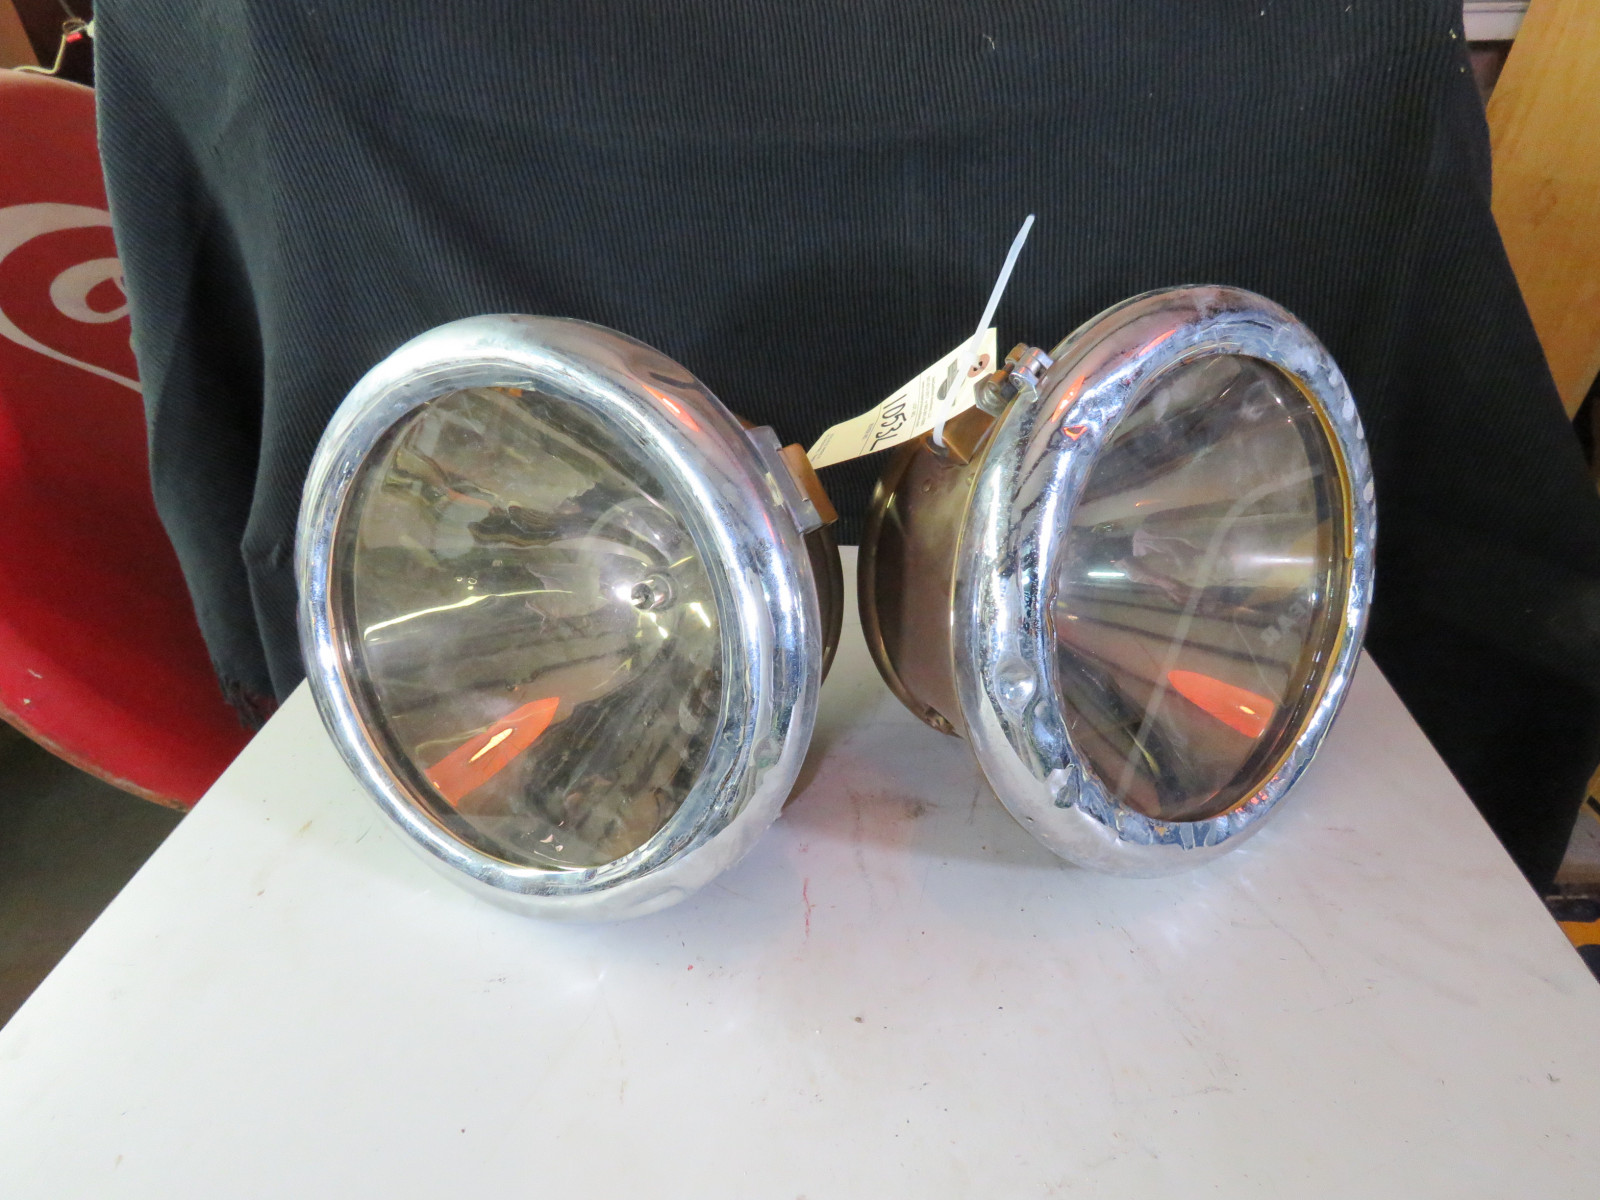 Pair of Used Brass Headlights - Image 1